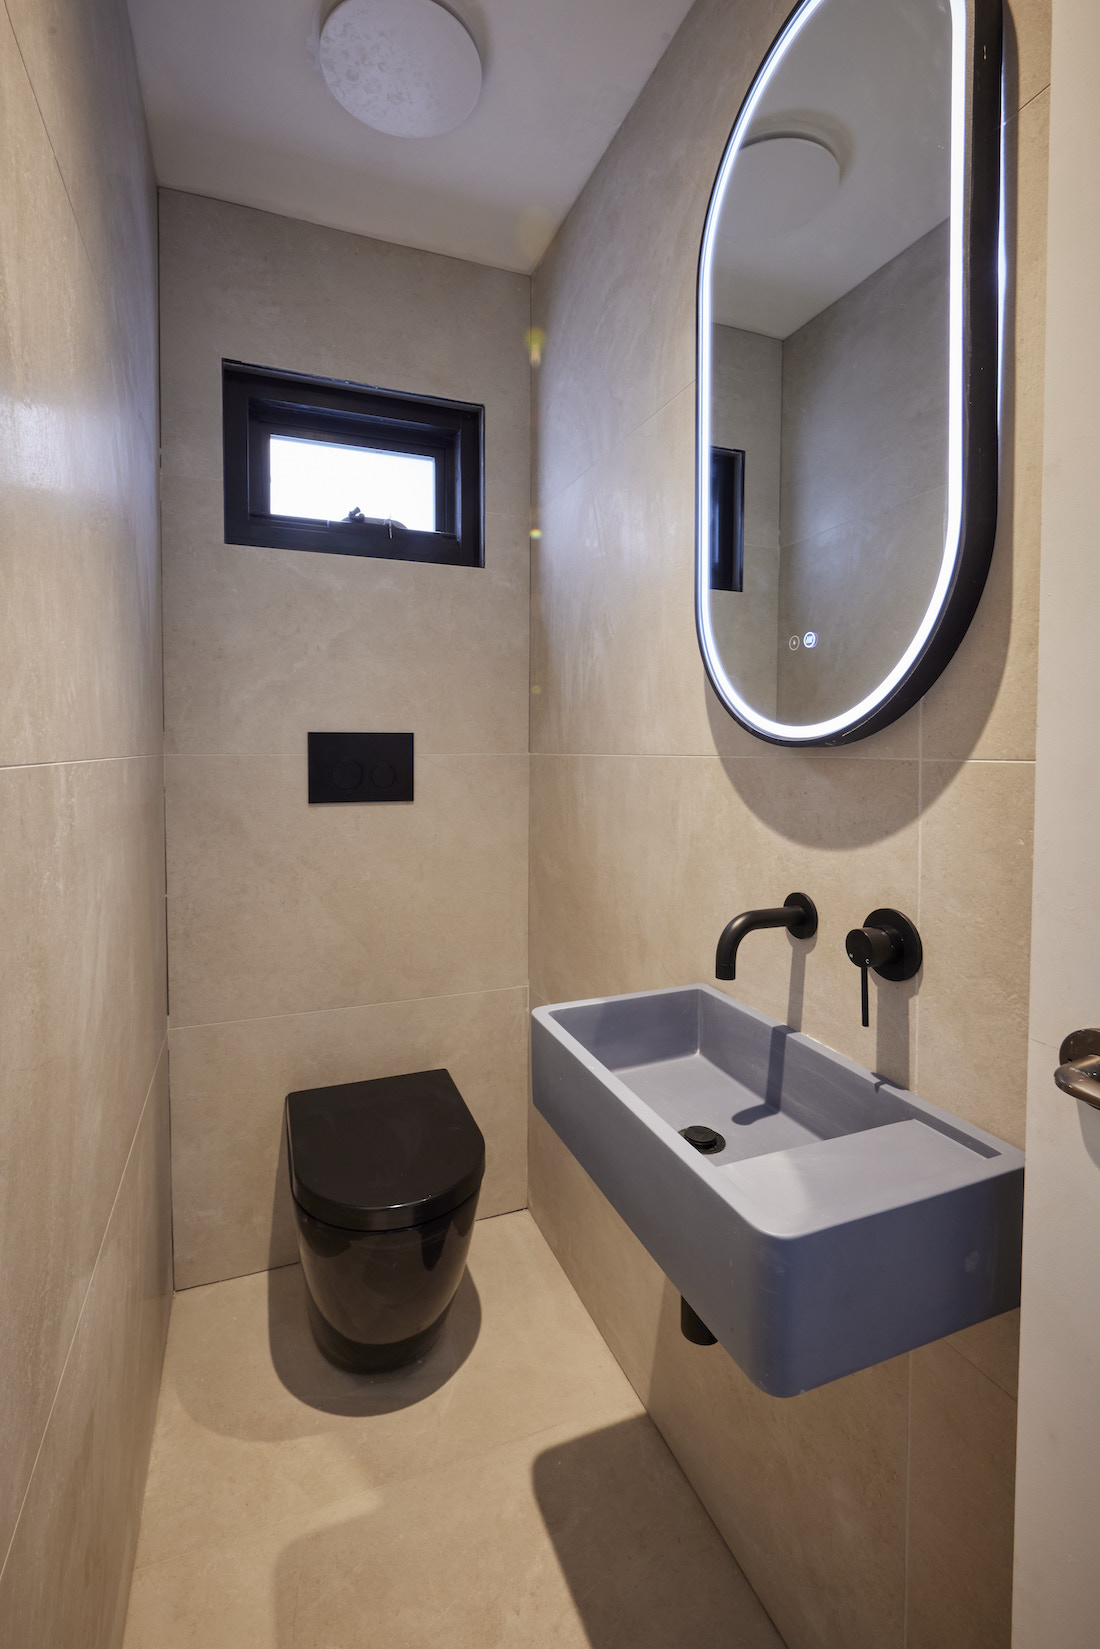 Powder room with black toilet blue basin and LED pill mirror